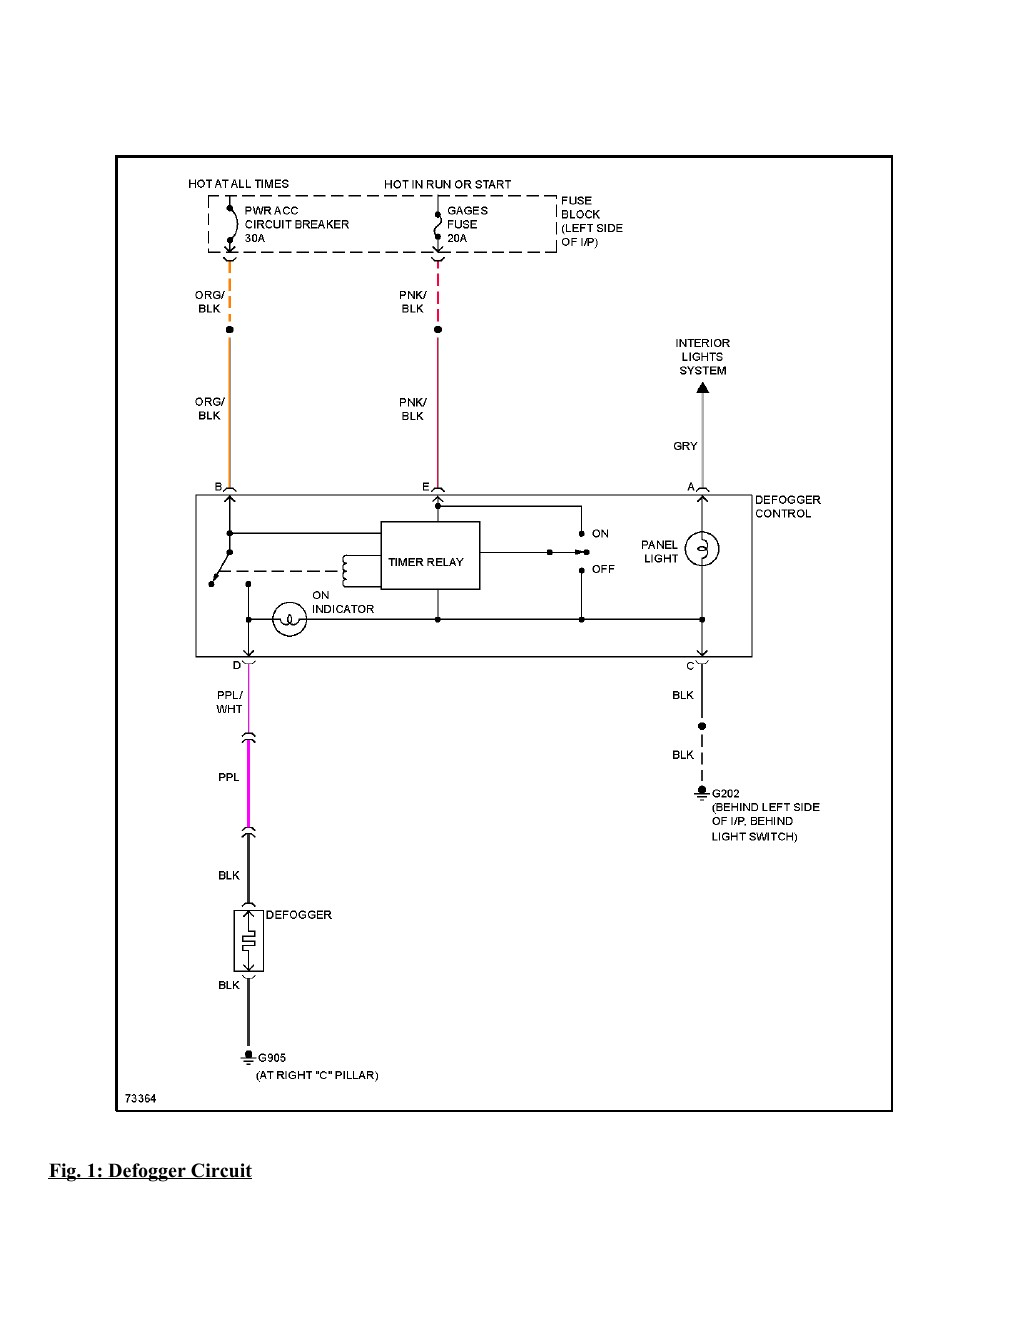 hight resolution of 1995 chevrolet monte carlo ss complete wiring diagram part 1999 monte carlo wiring diagram 1999 monte